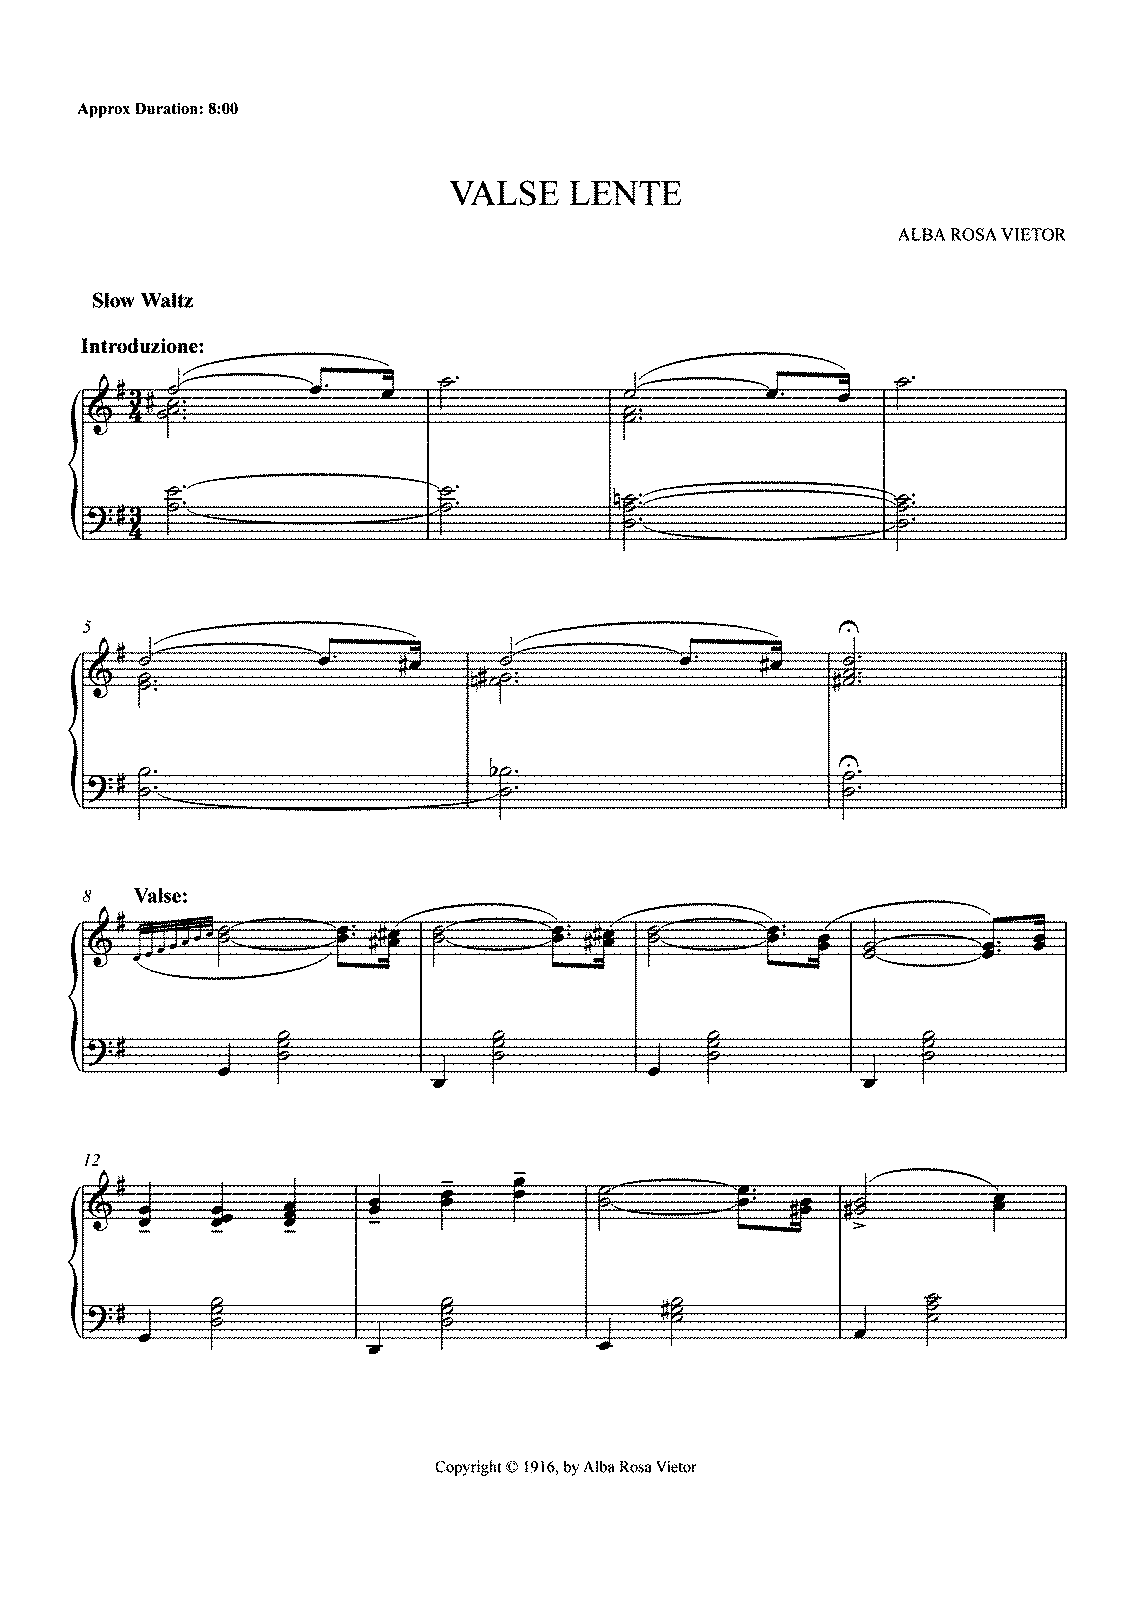 PMLP367799-Valse Lente 00-PIANO -CORR Bar102-.pdf